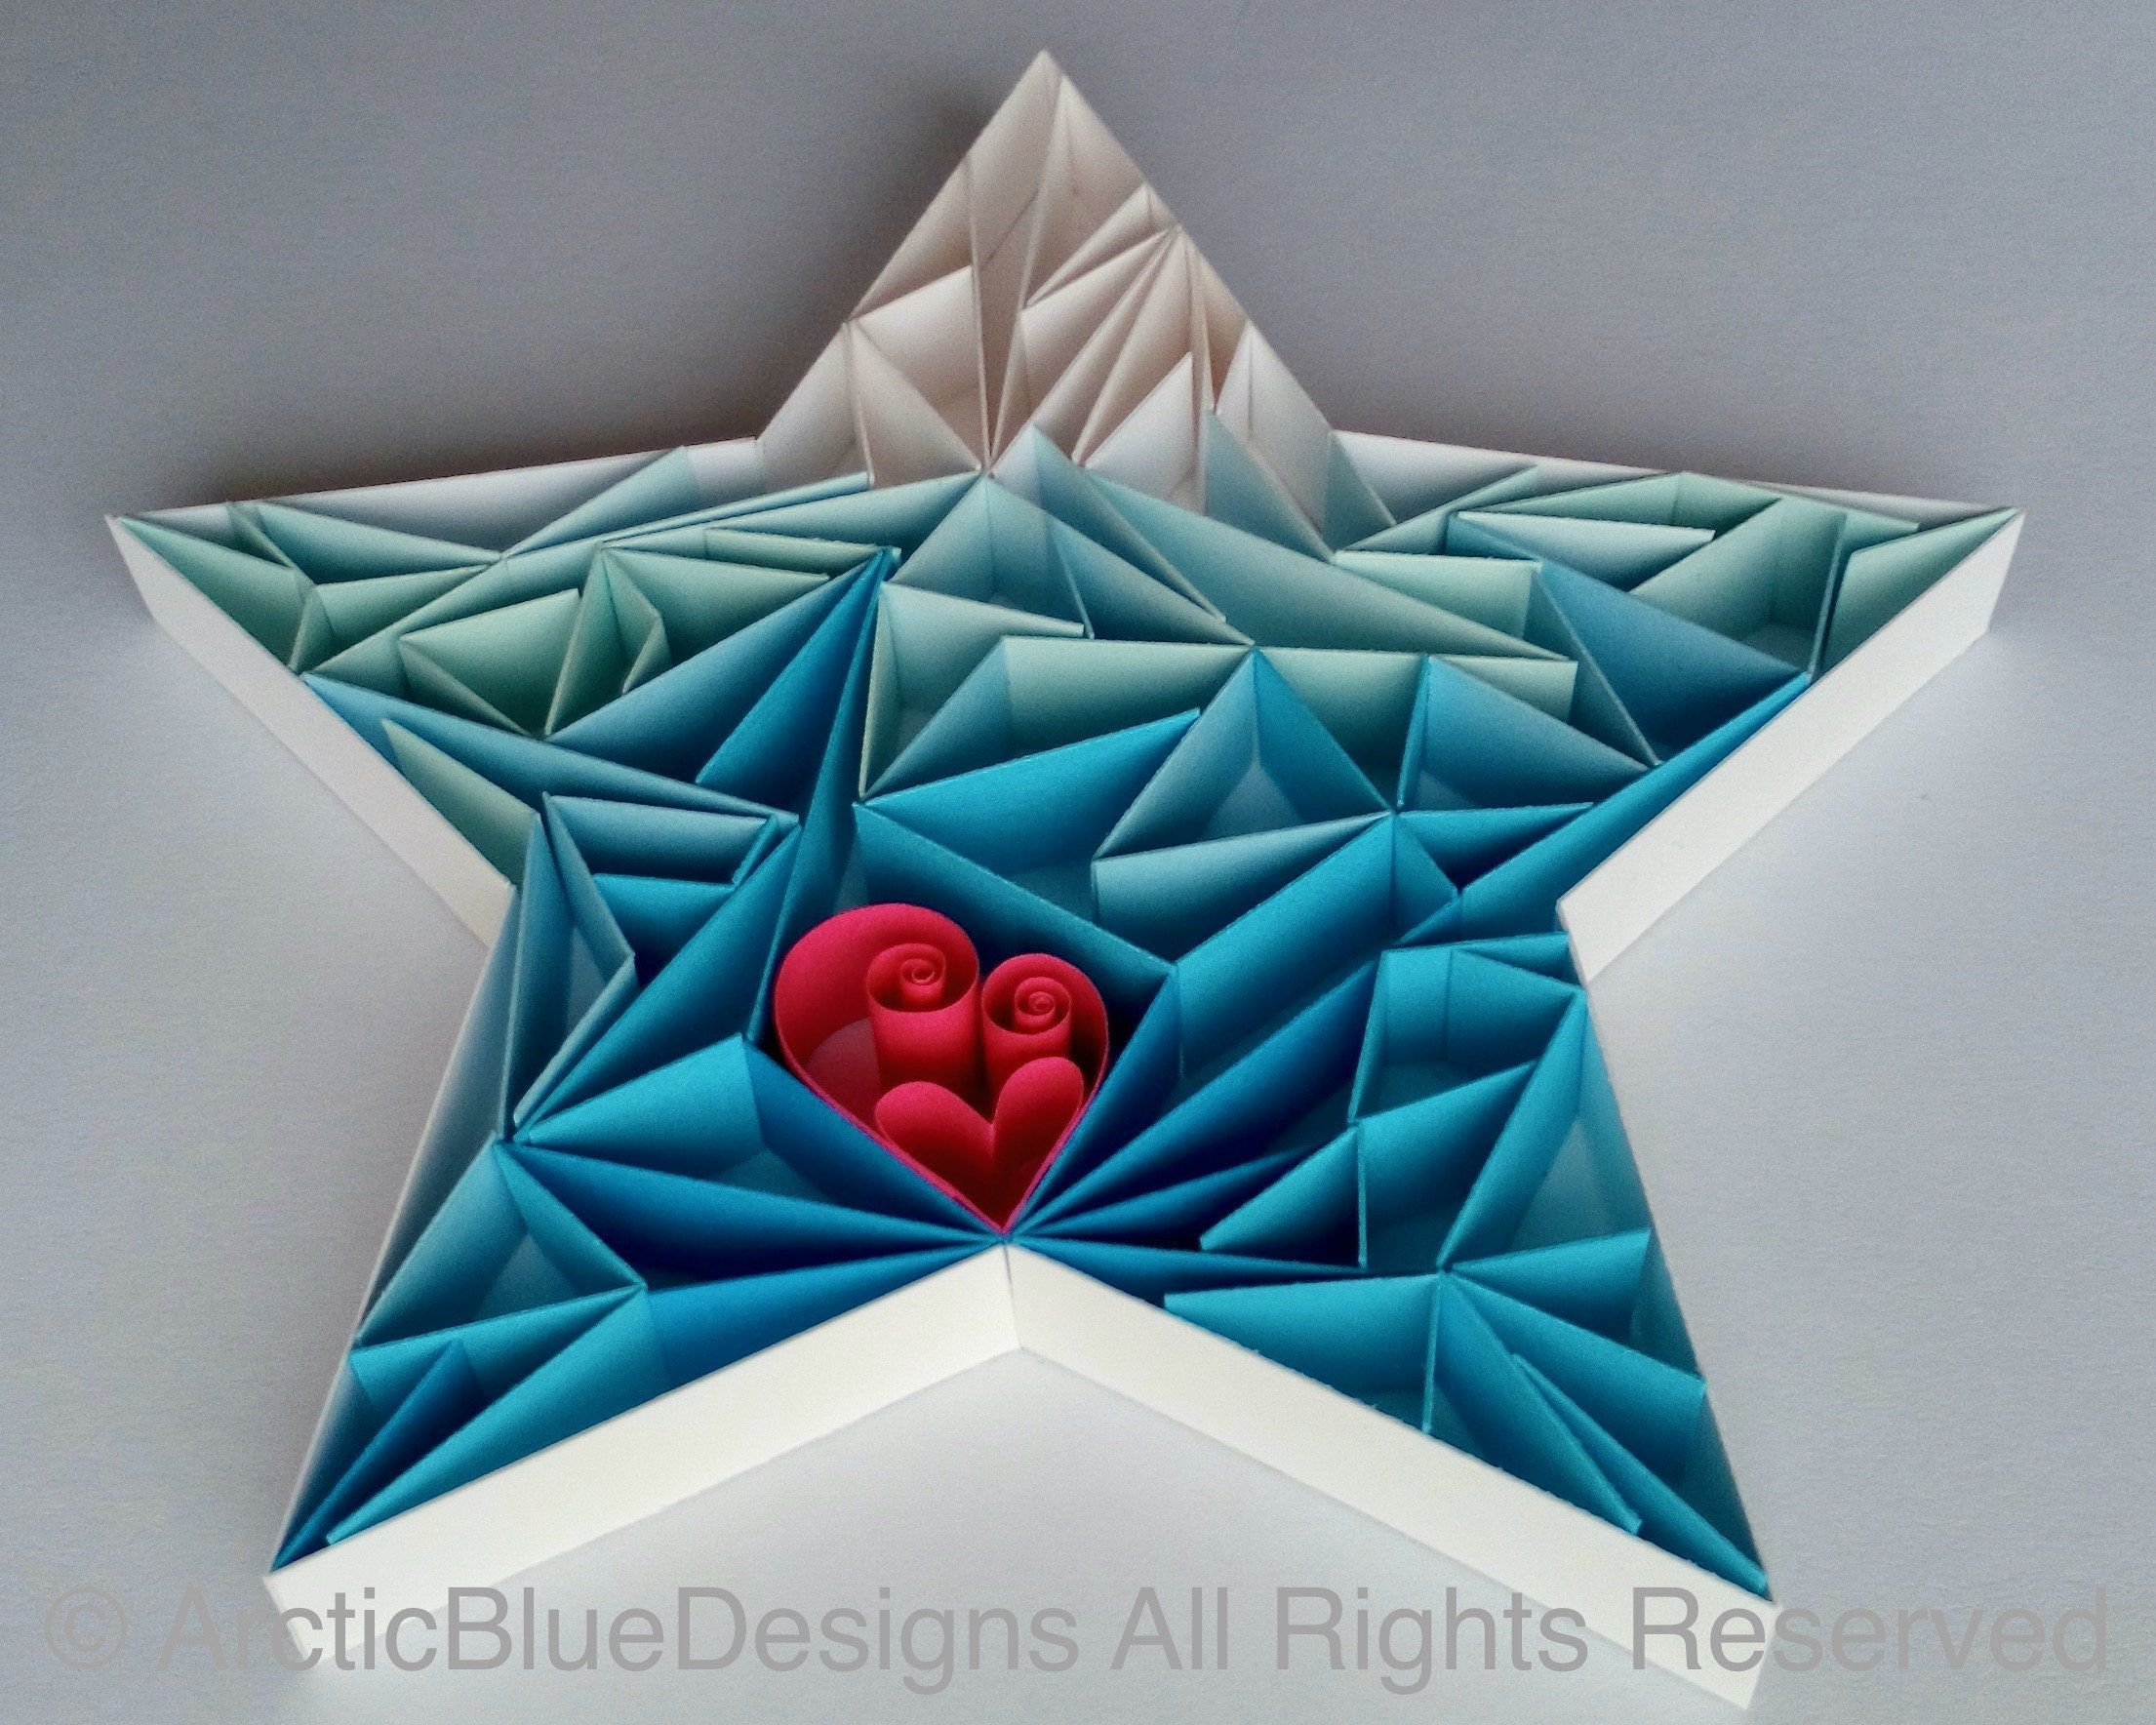 Photo of Quilled Star Ice Crystal Heart Decoration Ornament Paper Handmade